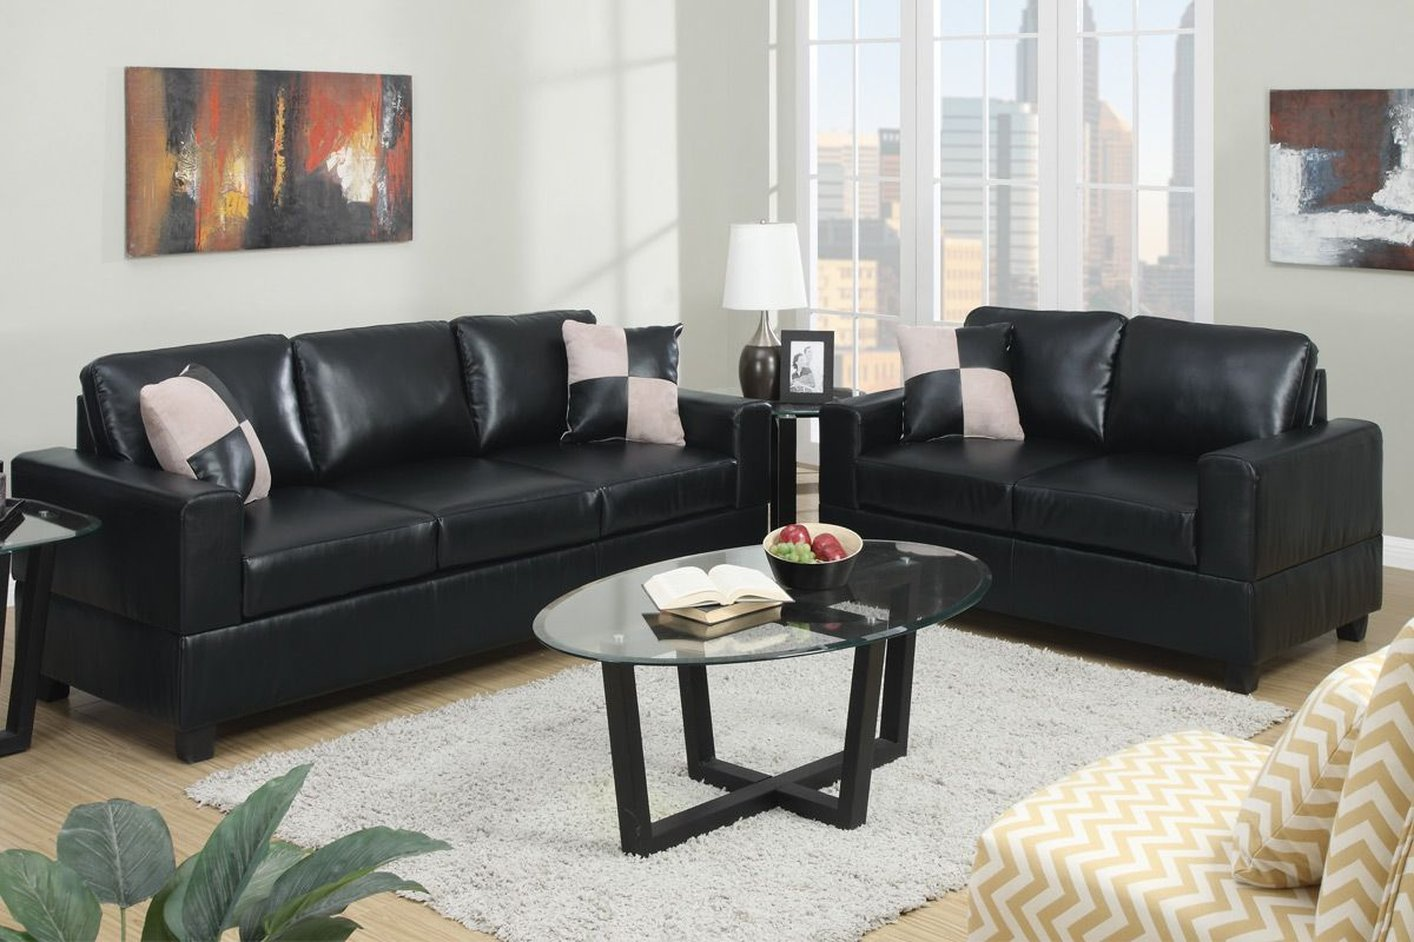 Poundex tesse f7598 black leather sofa and loveseat set for Couch sofa set